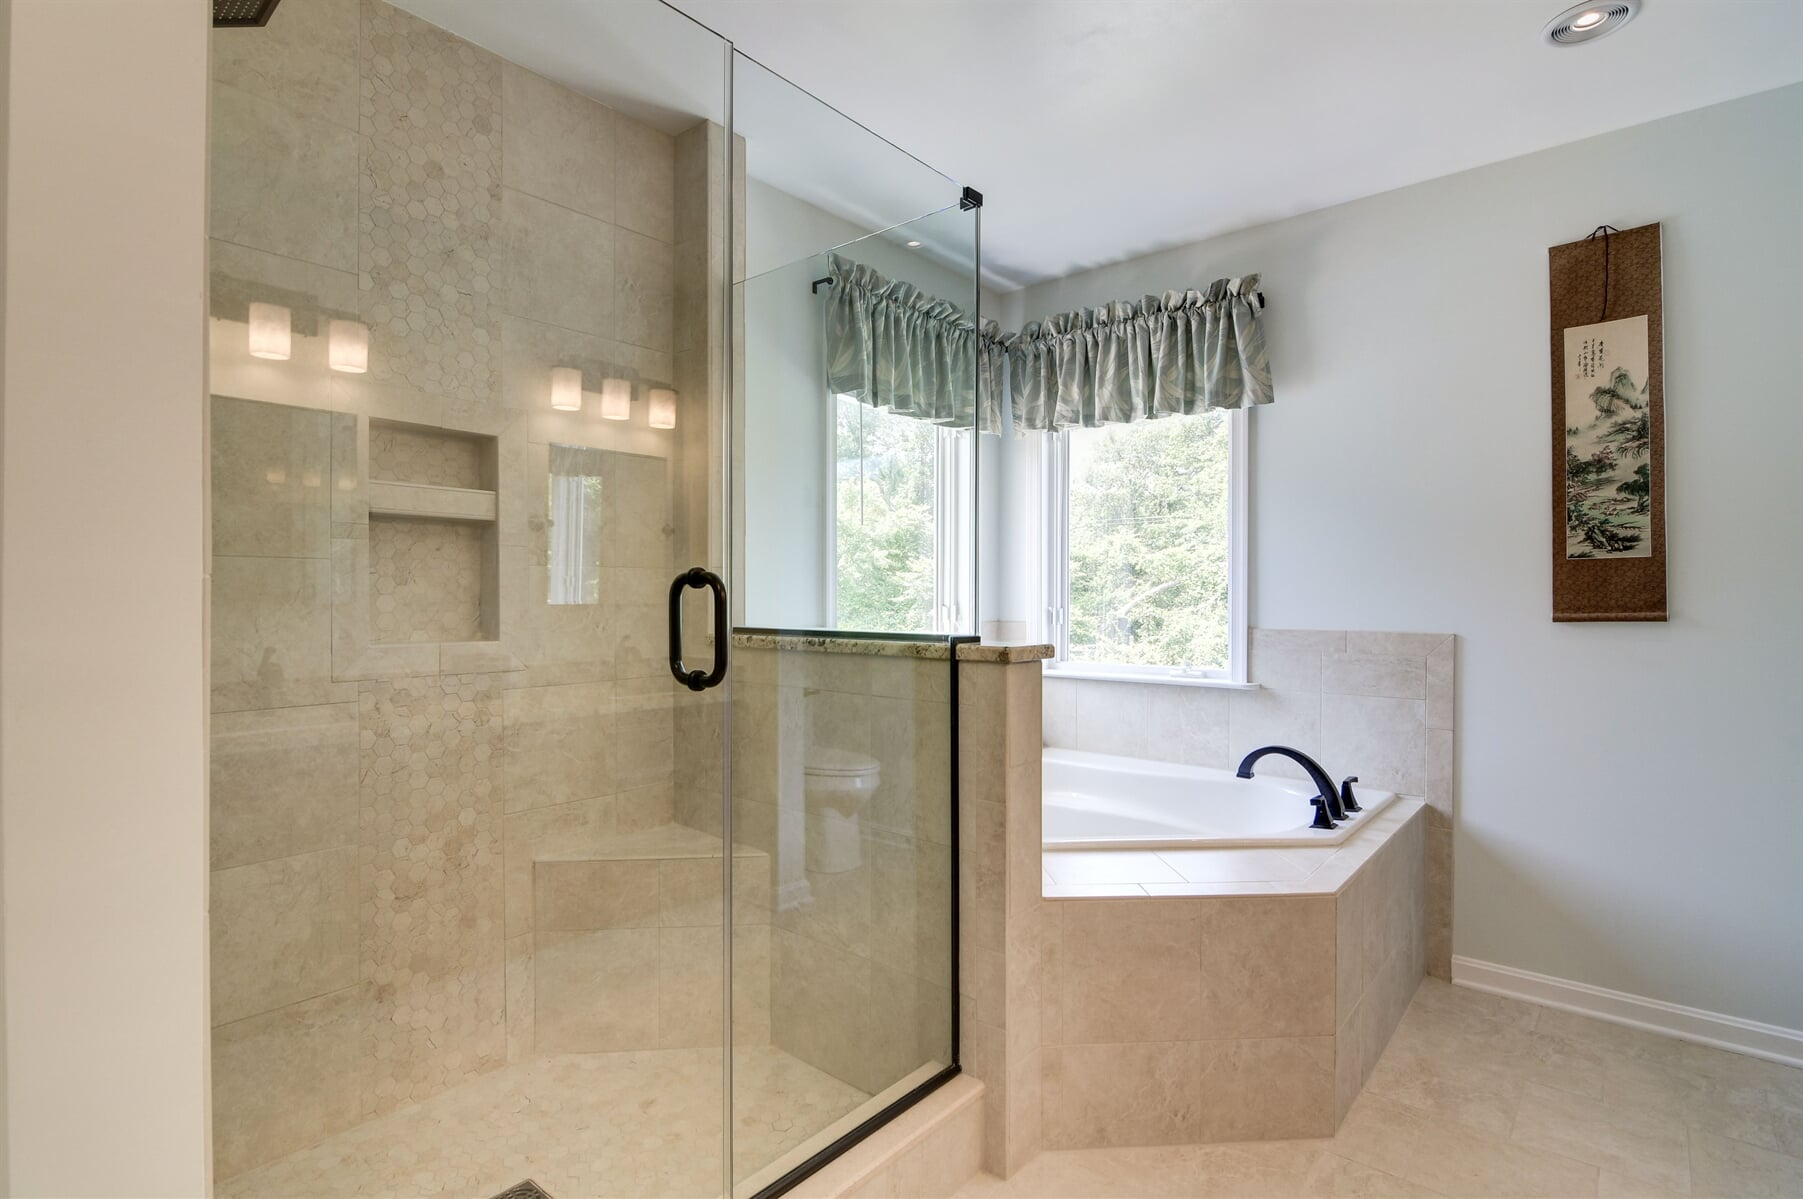 Bathroom remodeling in North Beach, MD by Southern Maryland Kitchen, Bath, Floors & Design